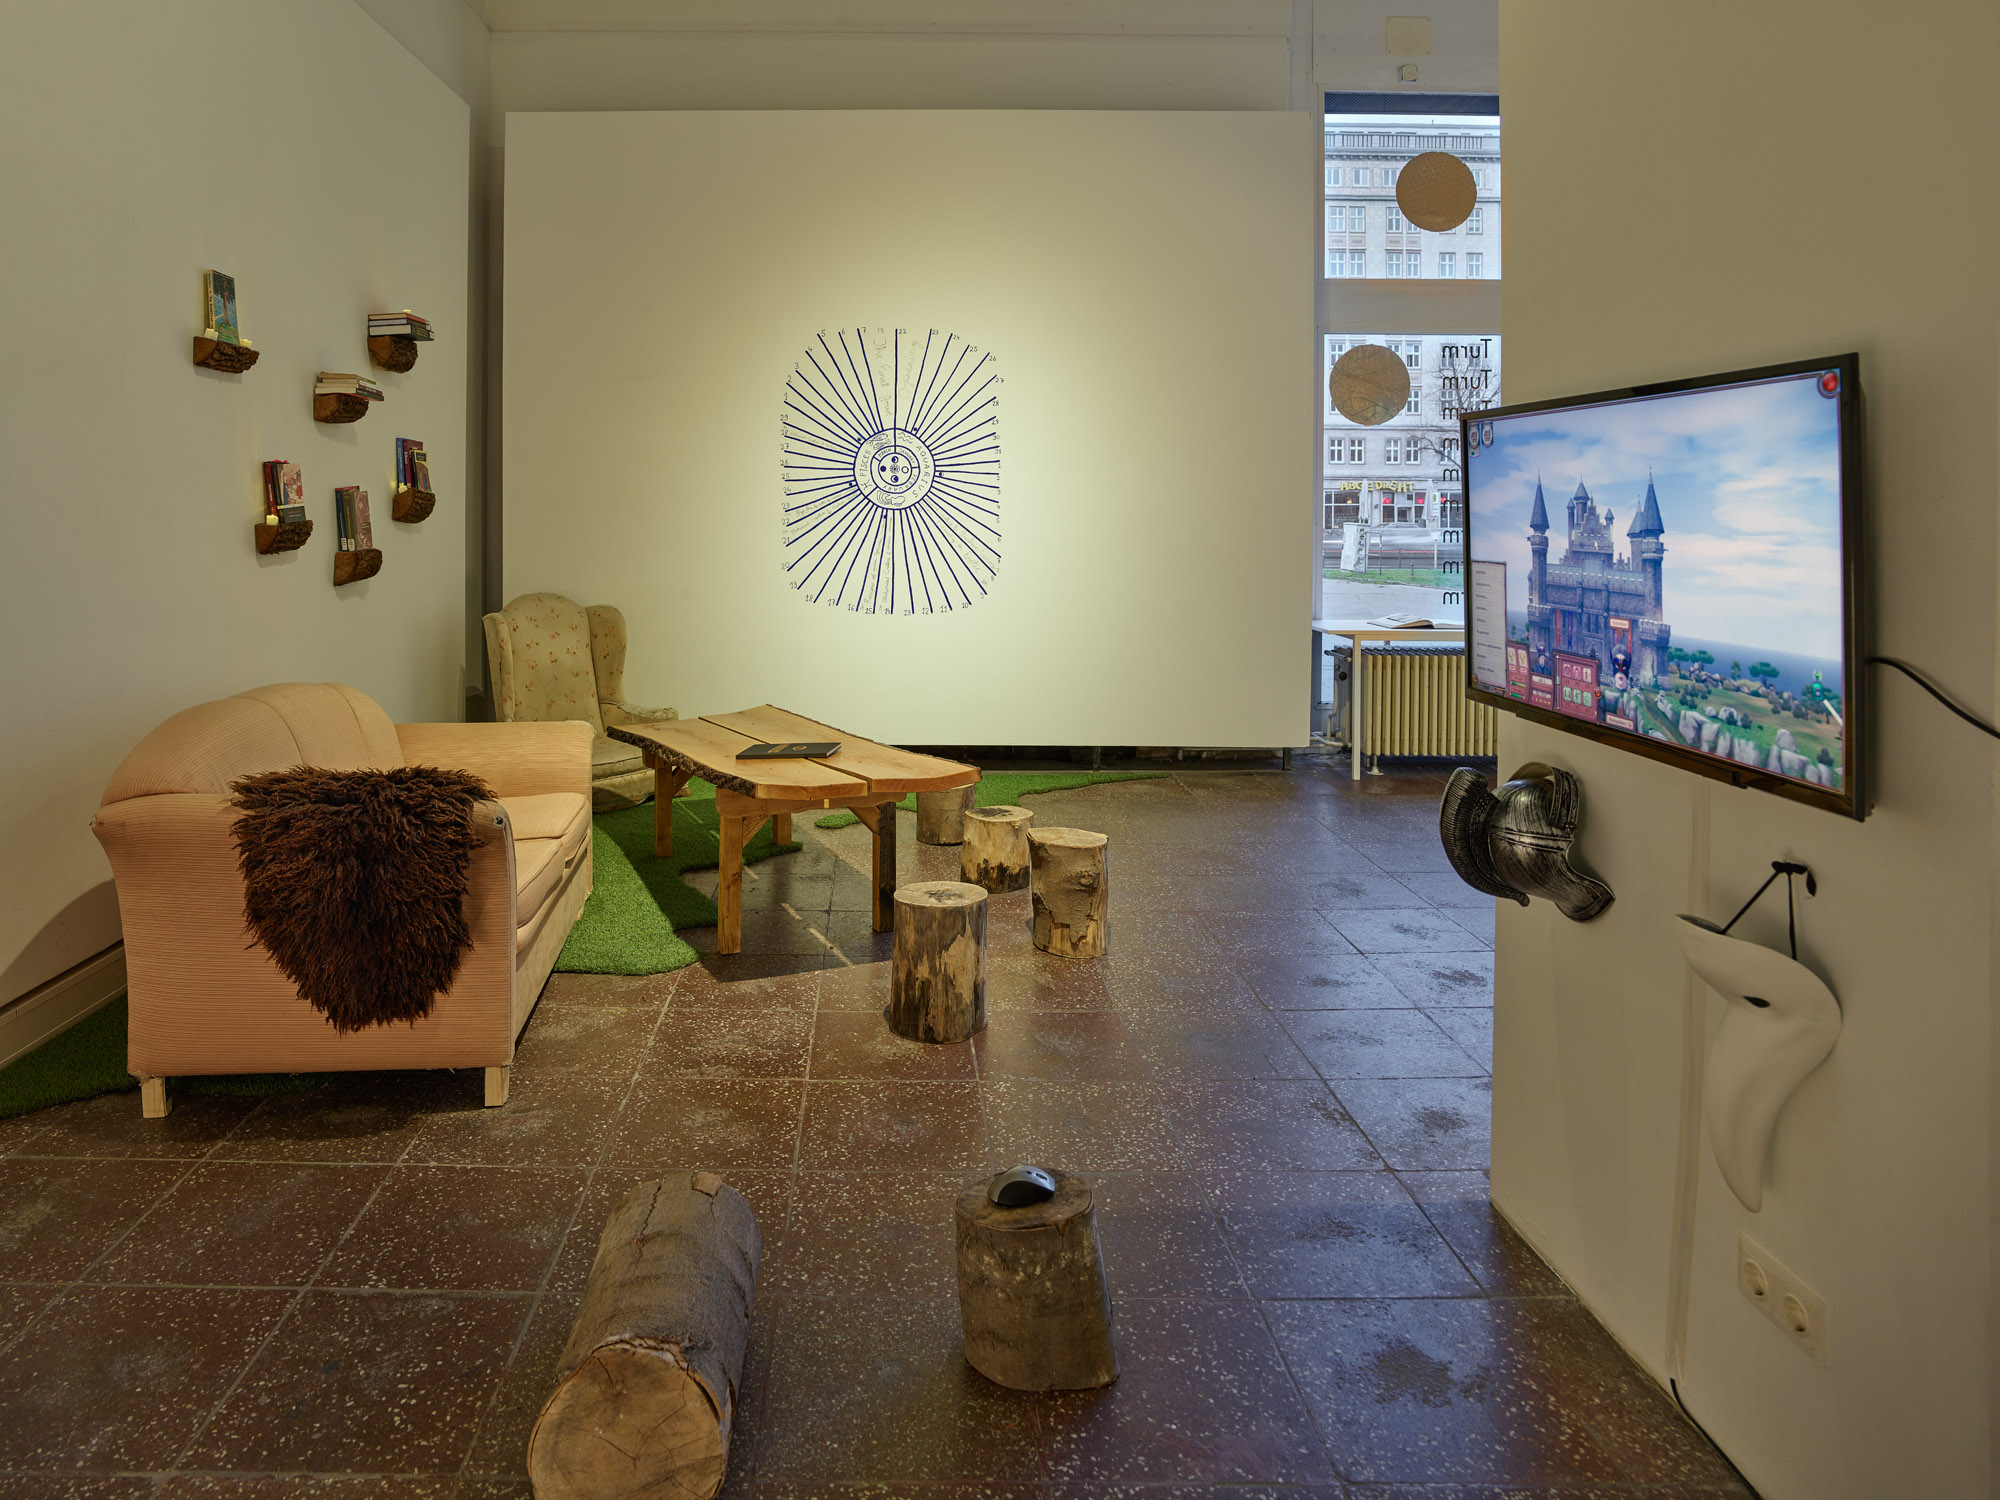 "The photo is an exhibition view of the show ""Burlungis"" in Galerie im Turm in Berlin. On the left side of the space next to the wall there is an old pink couch, behind it in the corner a beige armchair, next to the couch a table whose table top was made from a tree trunk with bark. The furniture stands on a piece of artificial grass in a curvy shape. The rest of the floor is made of stone-gray tiles. Cut tree trunks are scattered around the table as seating. In the middle on the back wall is painted a blue color and an oval shape a lunar calendar. On the right side of the picture there is a monitor on the wall of a column. A lock can be seen on the monitor in 3D. The image section belongs to a computer game. Two objects decoratively hang under the monitor. The left object is a silver armor made of plastic, the right object is a white plague doctor mask."